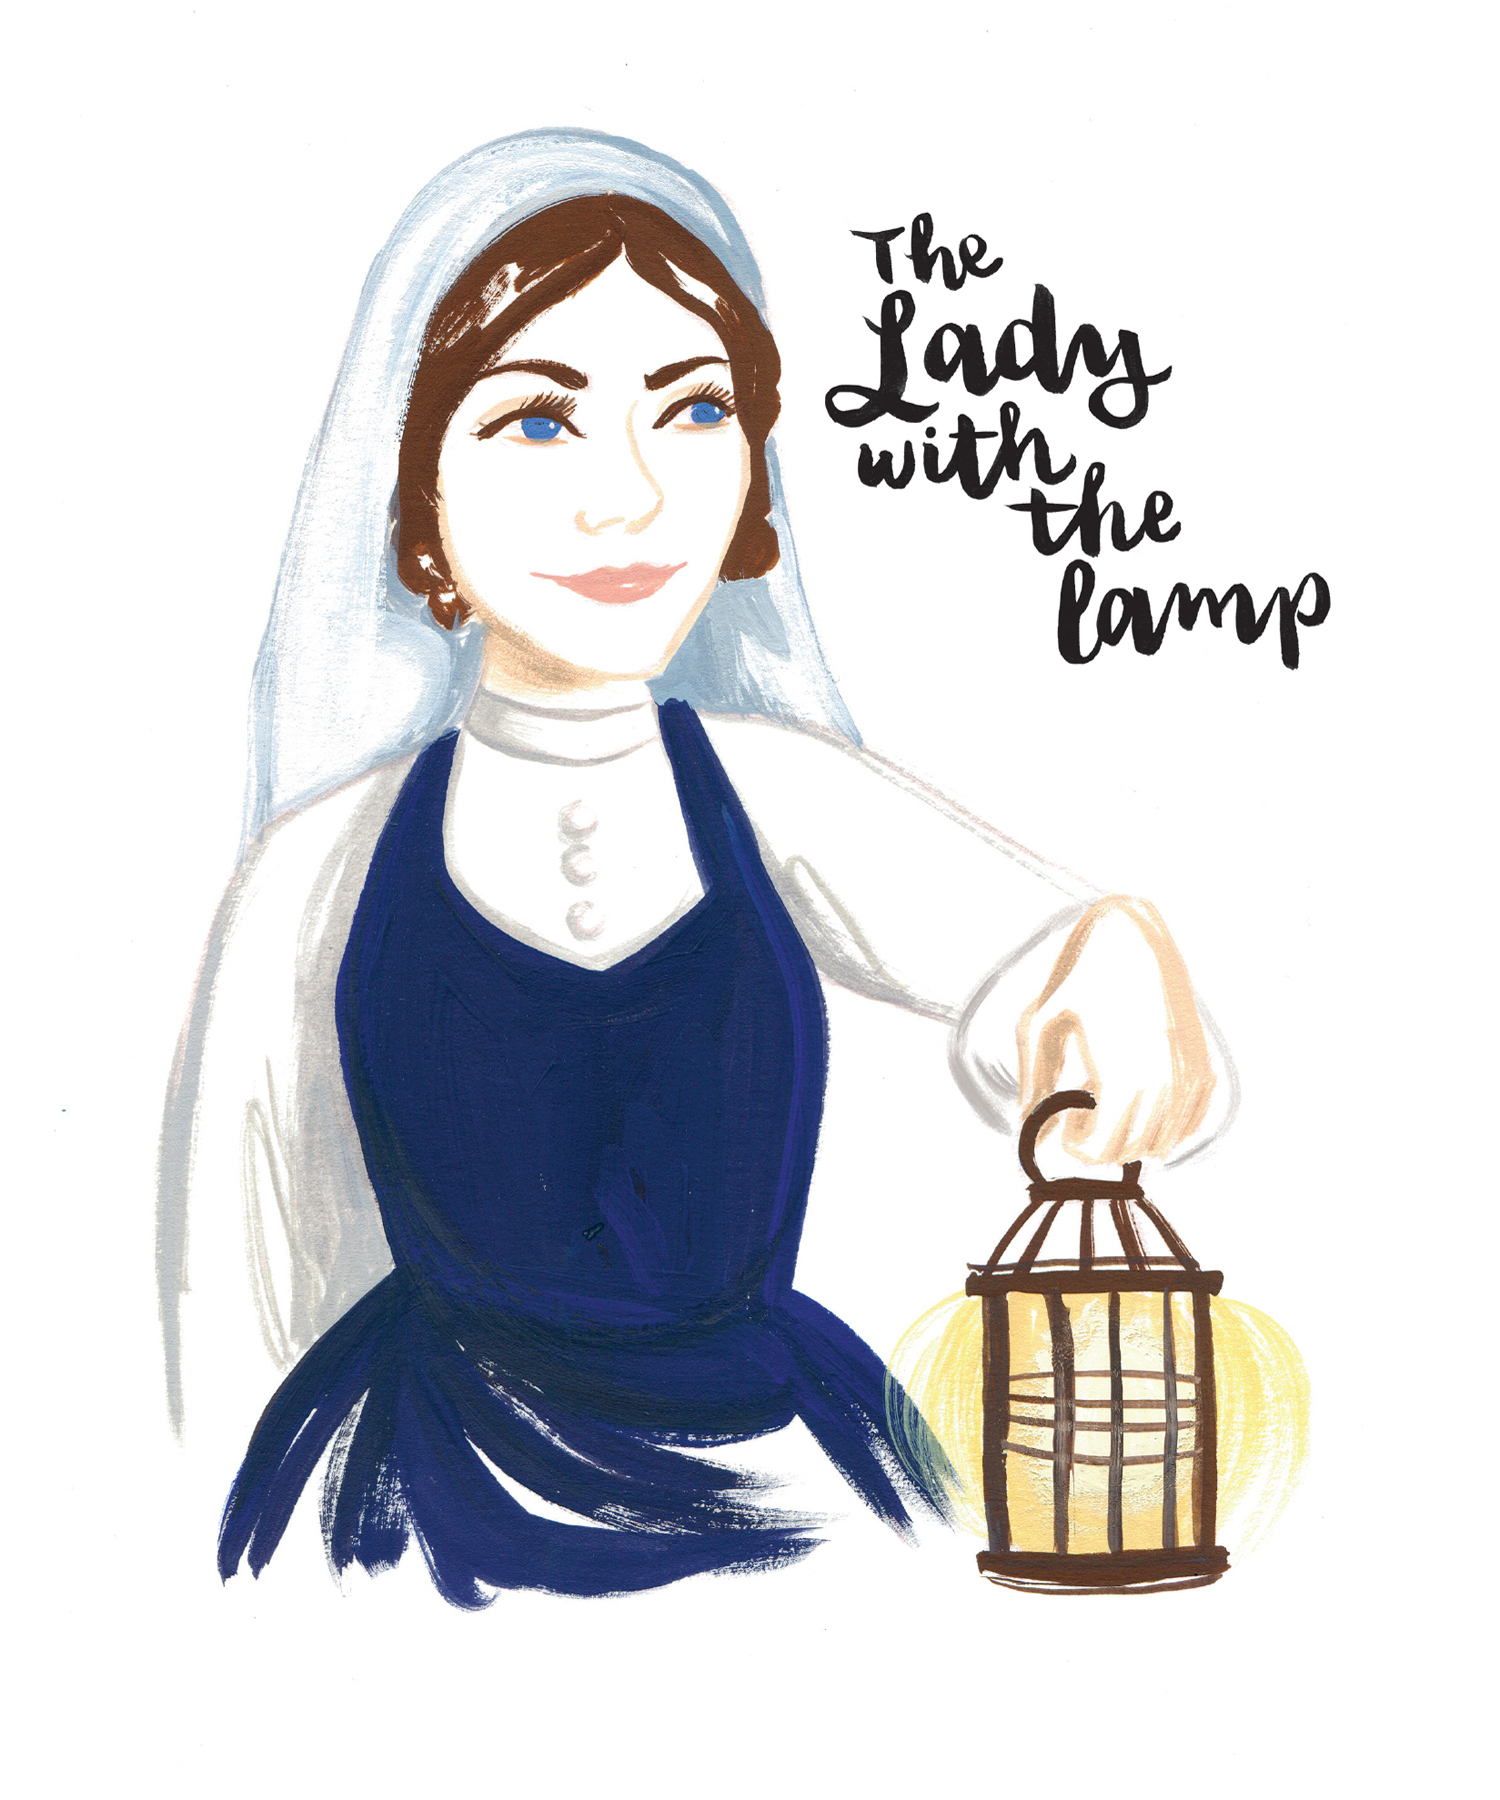 Florence Nightingale Bad Girls Throughout History 100